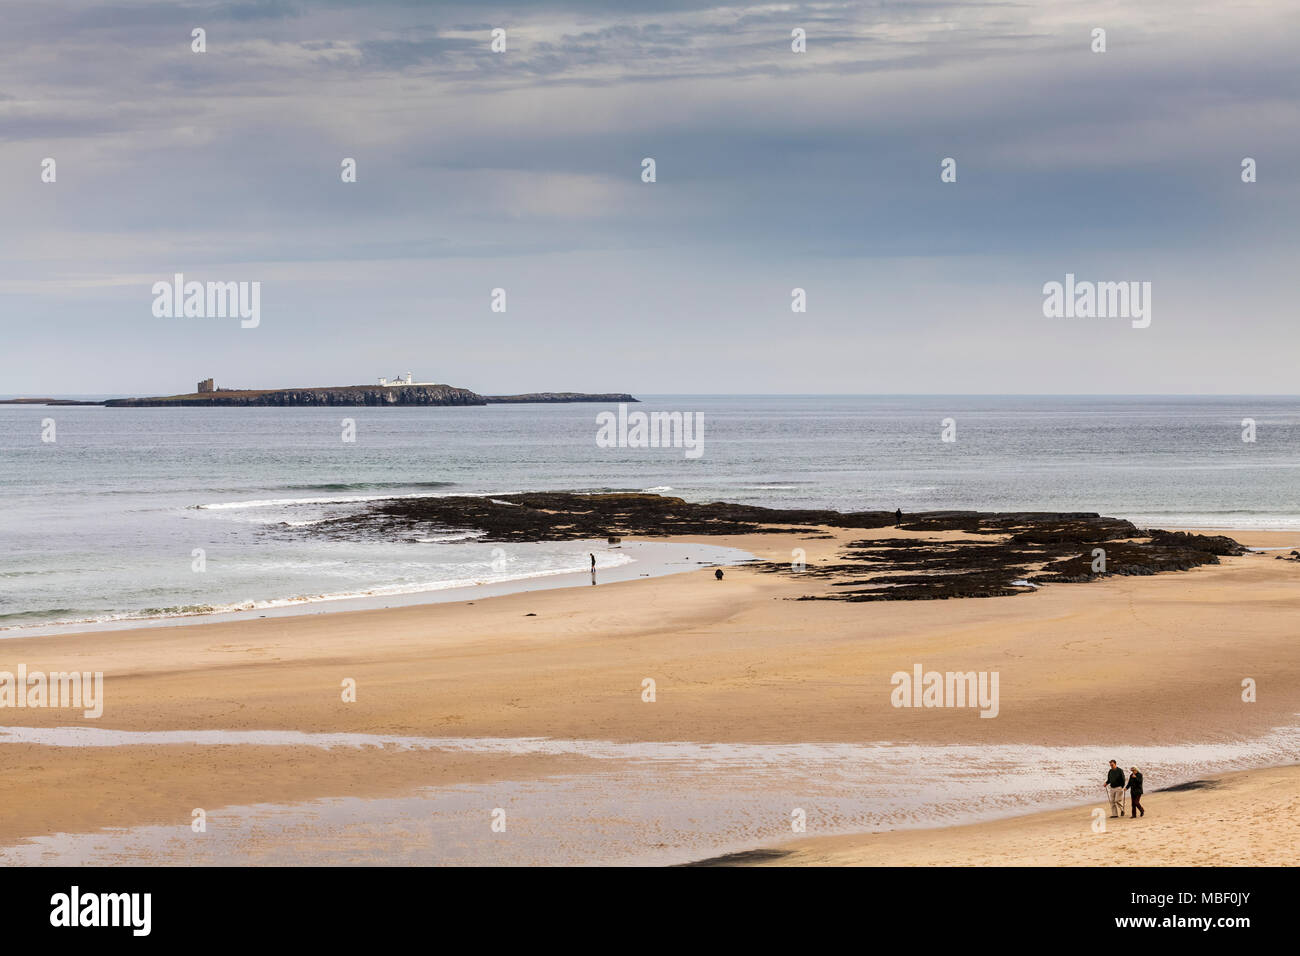 Bamburgh Beach with the Farne Islands in the background. - Stock Image